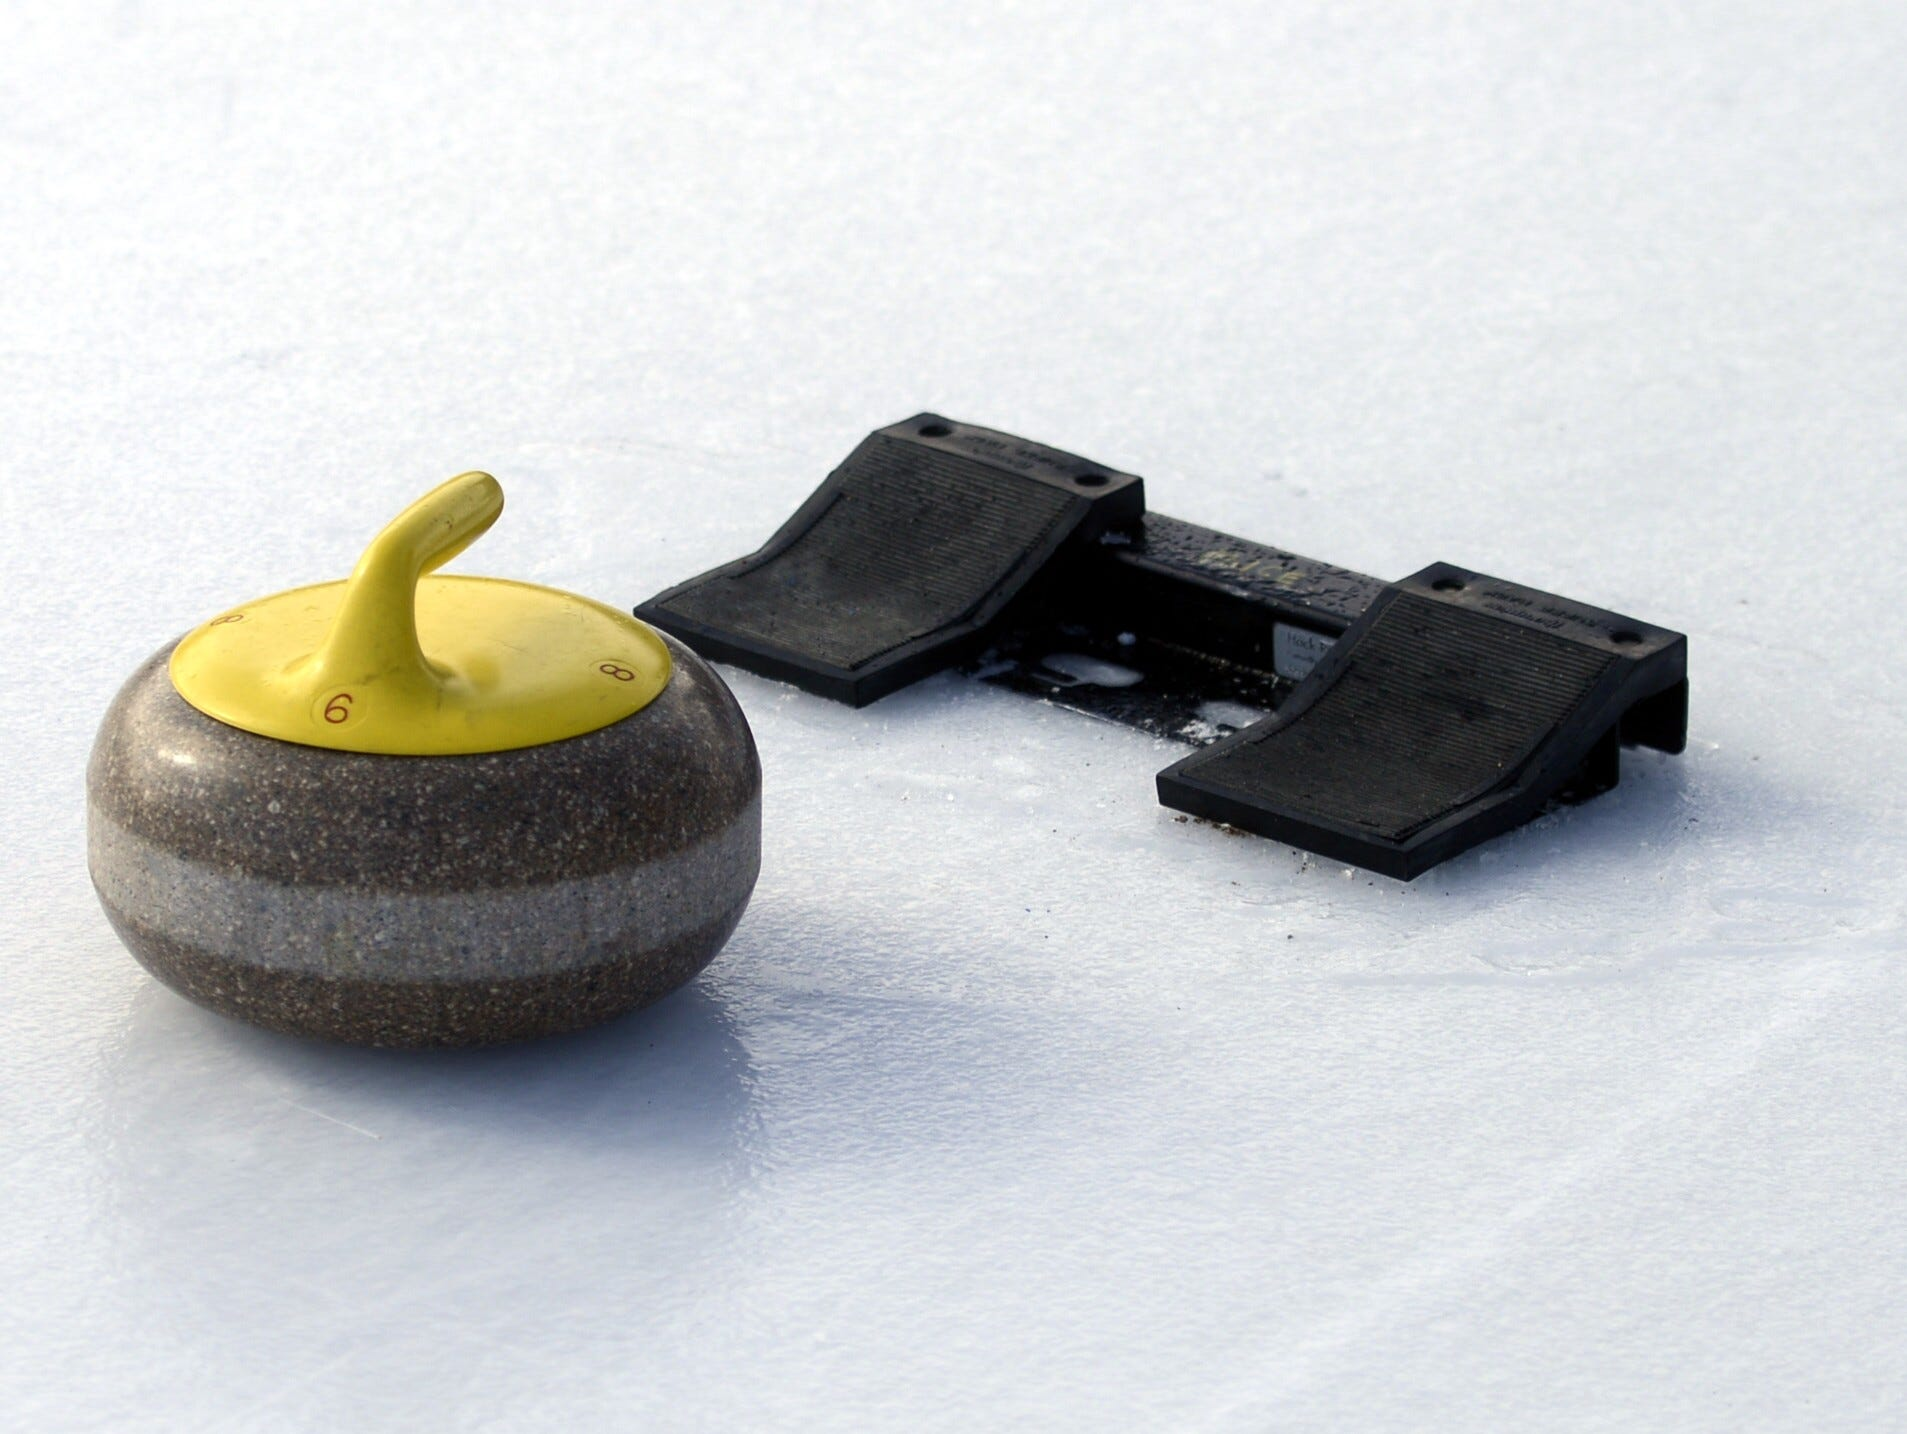 Curling stone at Titletown Winter Games, Saturday, Feb. 16, 2019.